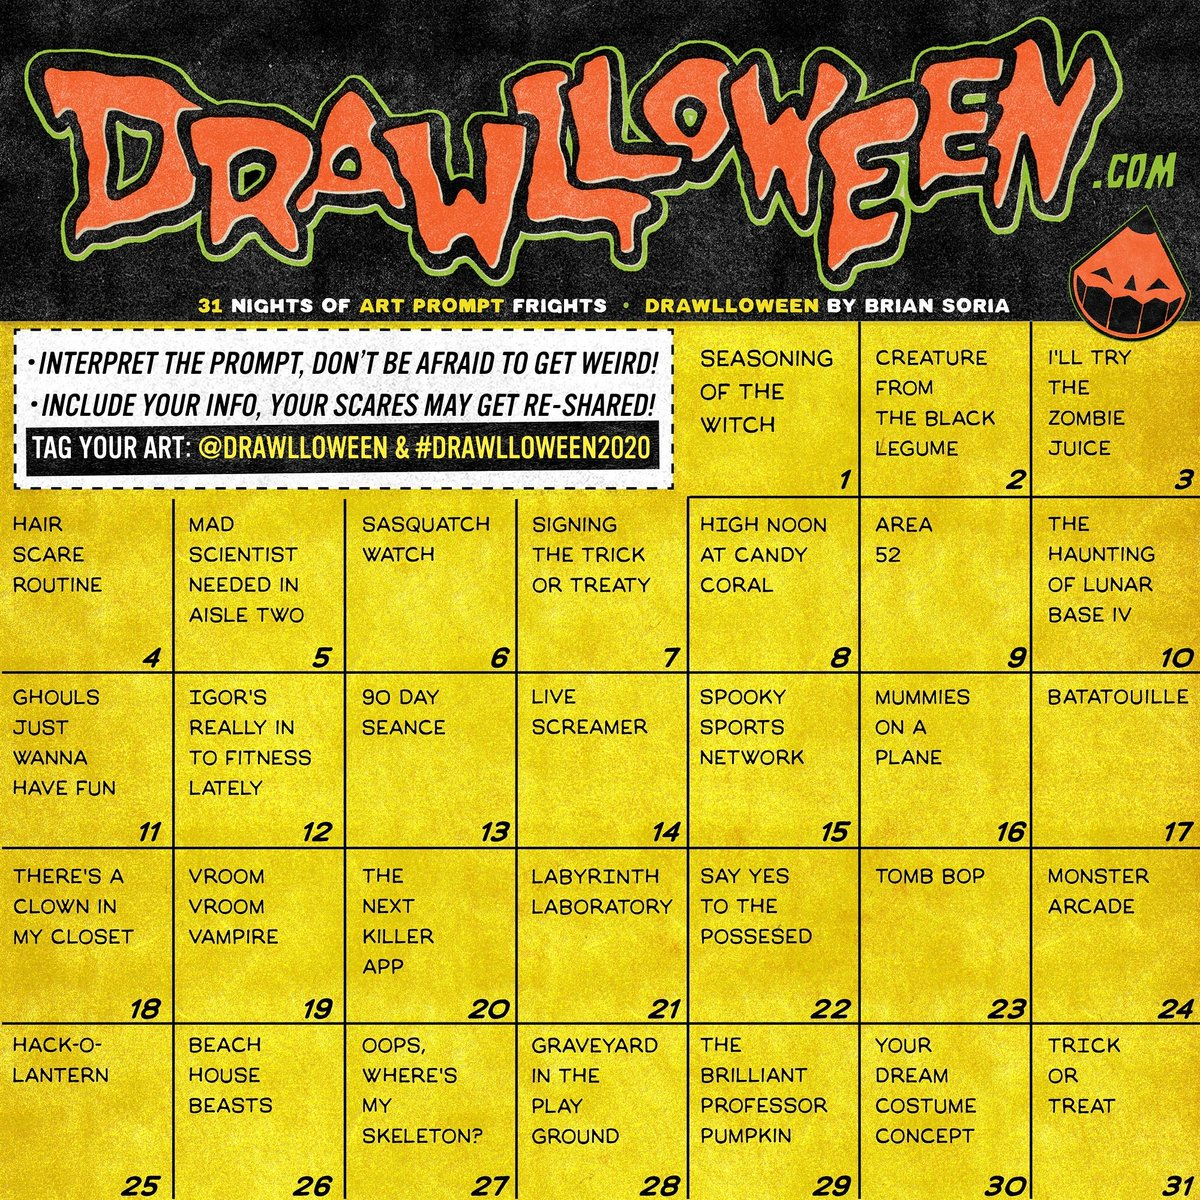 #DRAWLLOWEEN 2020✏️🎃 Scare up some art by interpreting the daily prompt from the calendar & make sure  to tag your work #Drawlloween2020 & @Drawlloween  Include your info clearly somewhere in your post!  Download calendar & a printer friendly version on